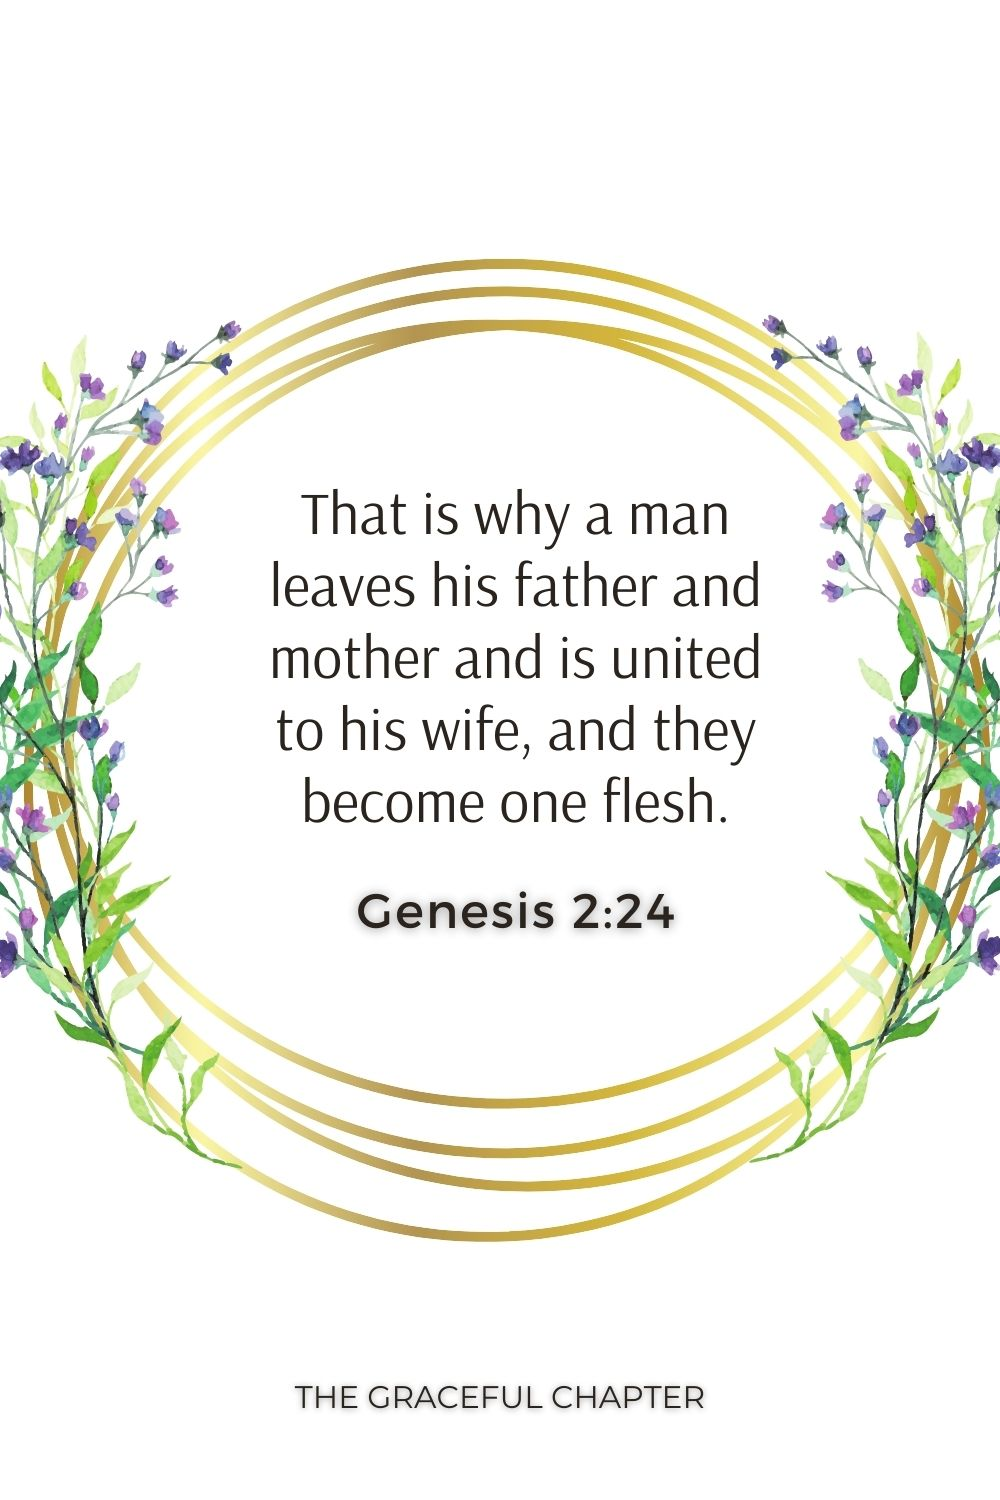 That is why a man leaves his father and mother and is united to his wife, and they become one flesh. Genesis 2:24